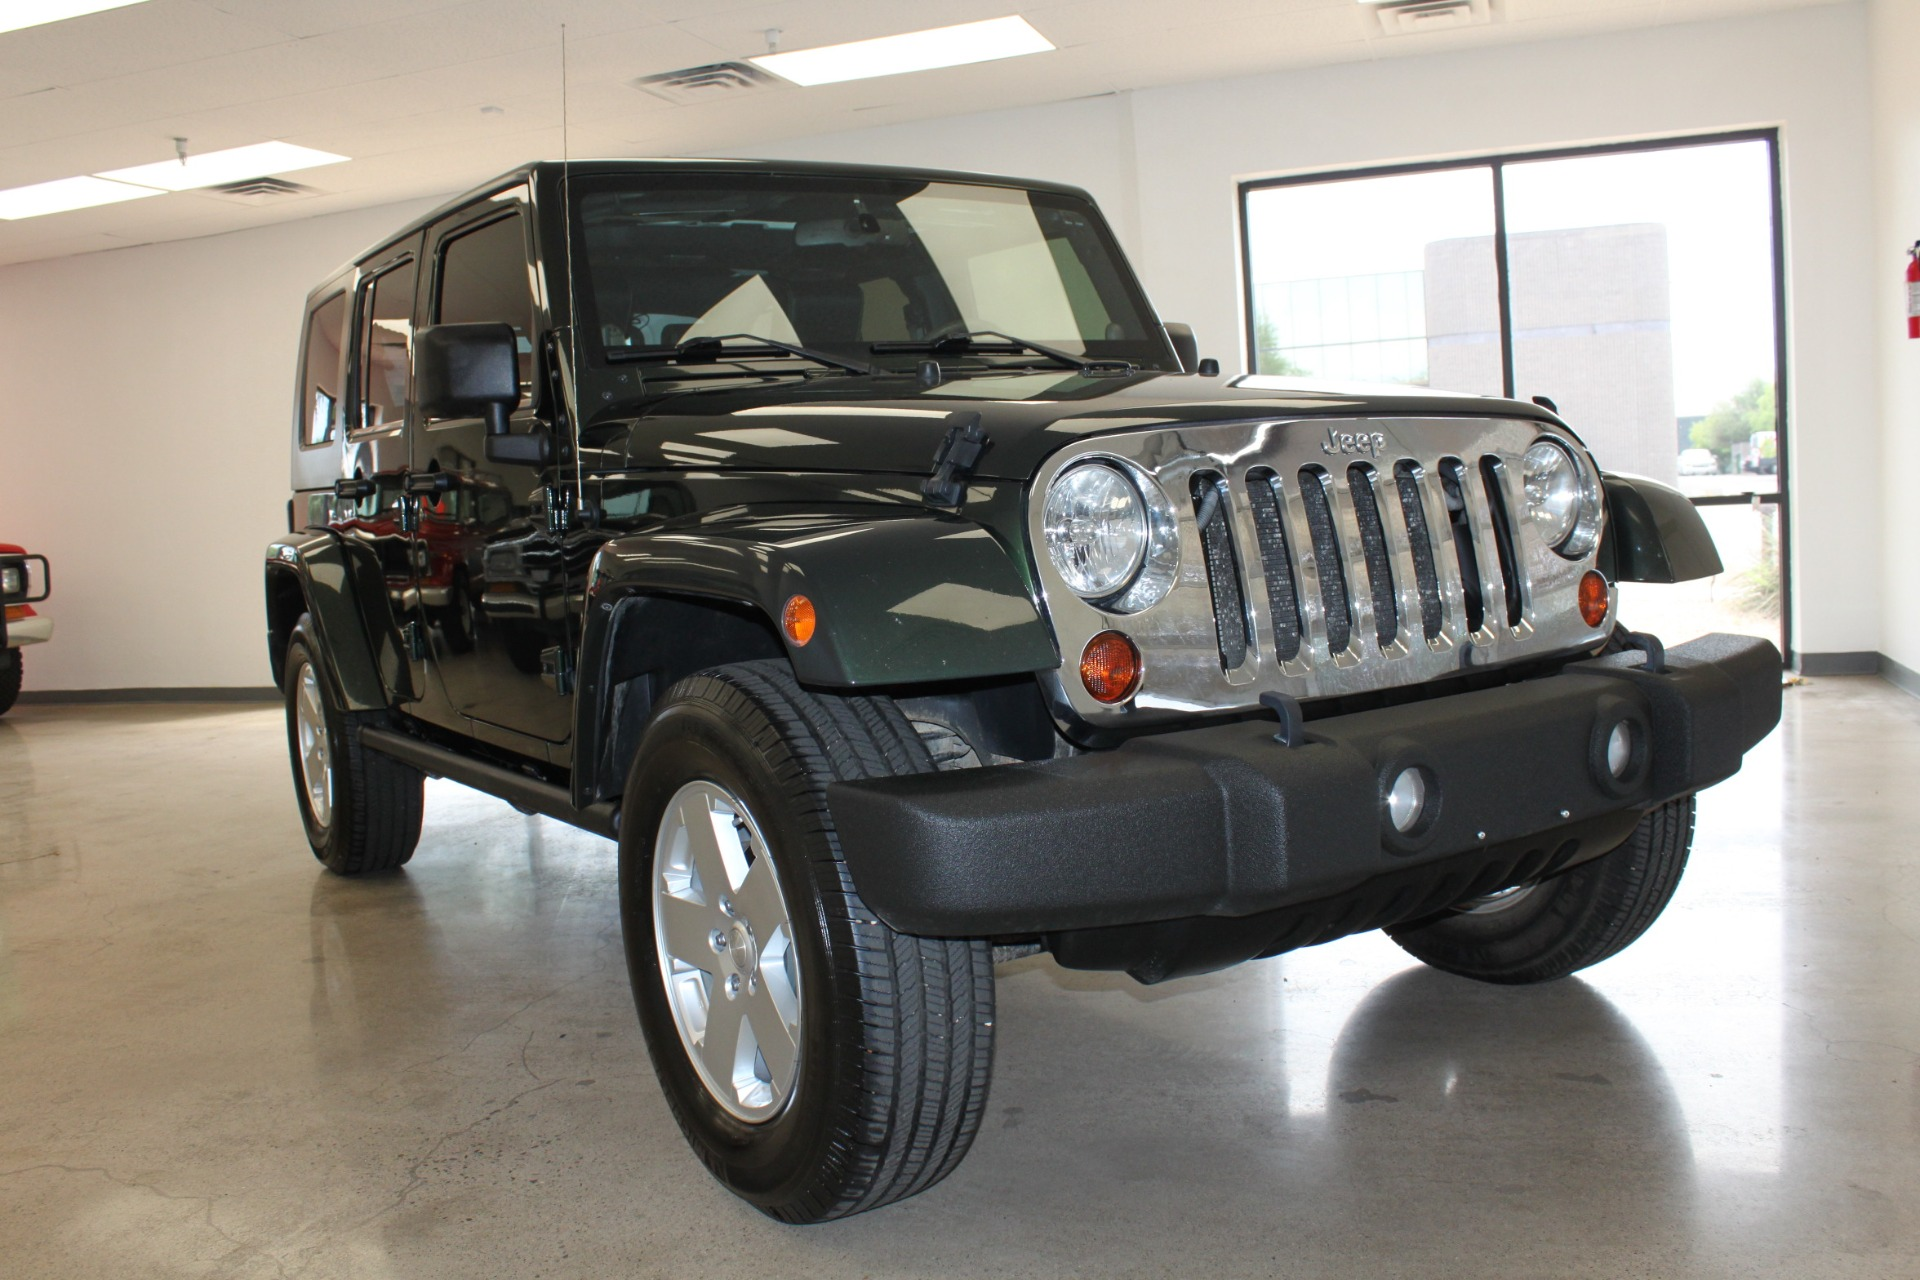 Used-2010-Jeep-Wrangler-Unlimited-Sahara-4X4-Mercedes-Benz